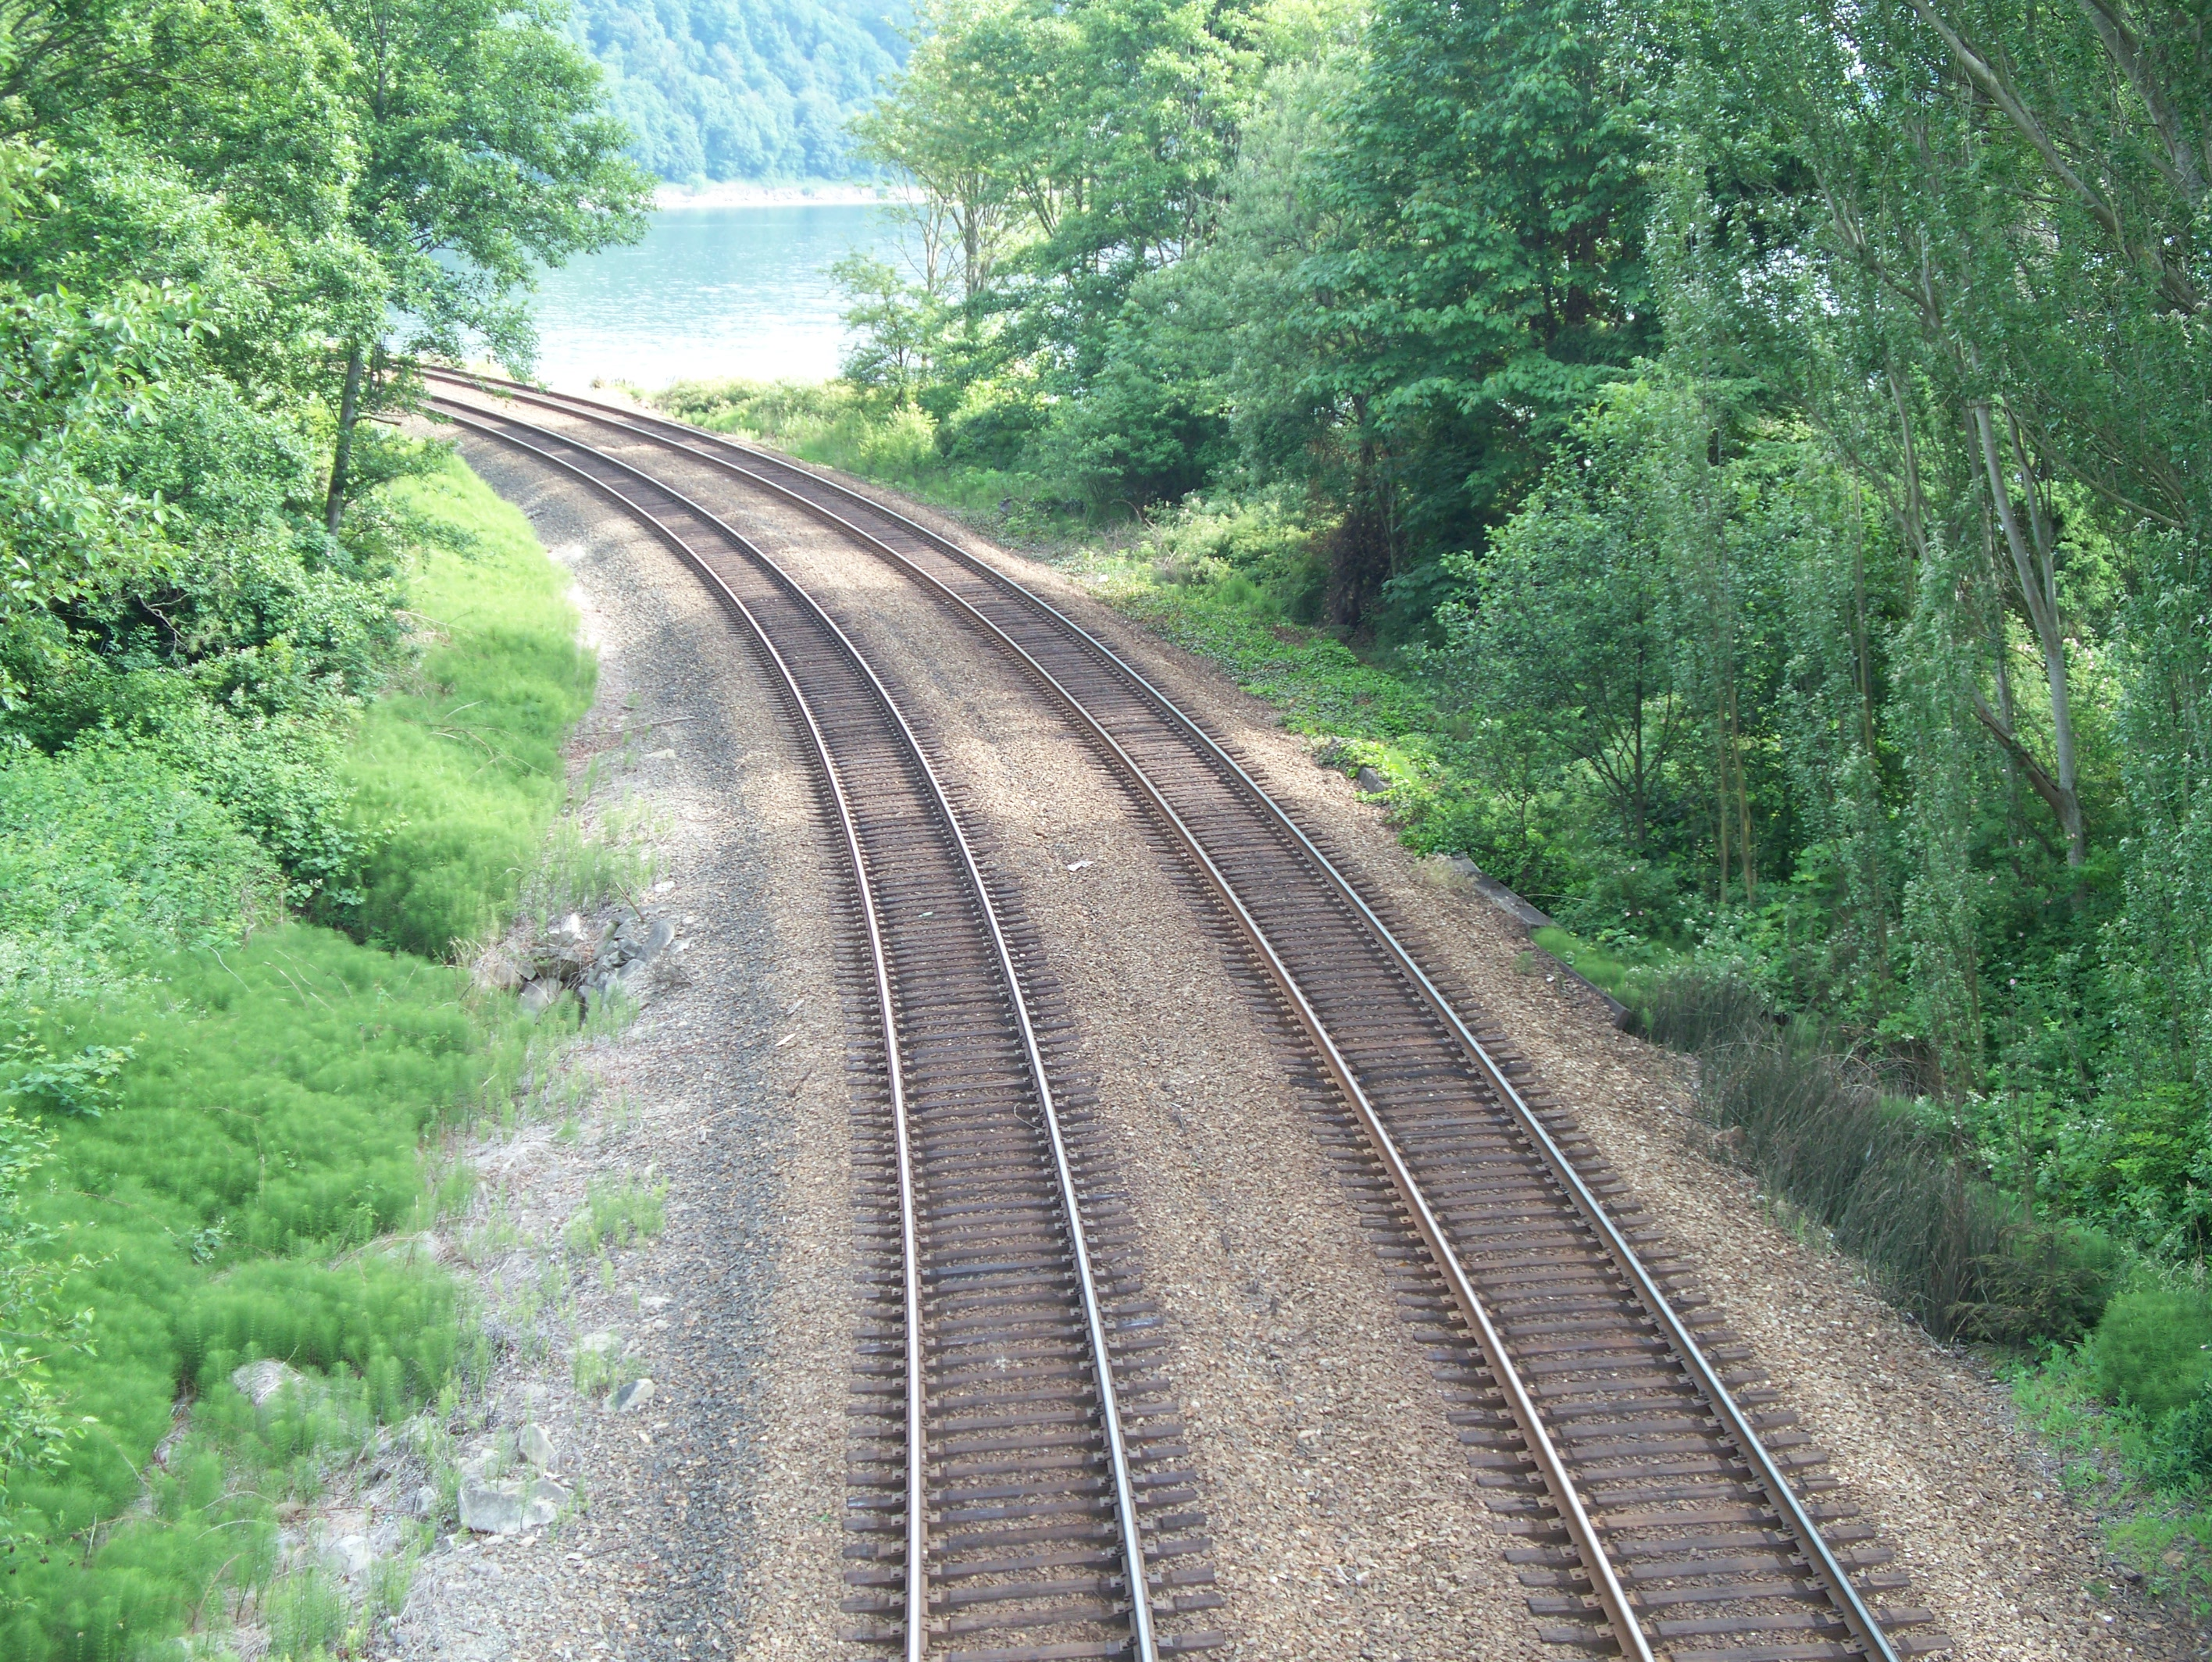 https://en.wikipedia.org/wiki/File:Twin_track_of_train_rails_in_a_wooded_area.JPG#mediaviewer/File:Twin_track_of_train_rails_in_a_wooded_area.JPG